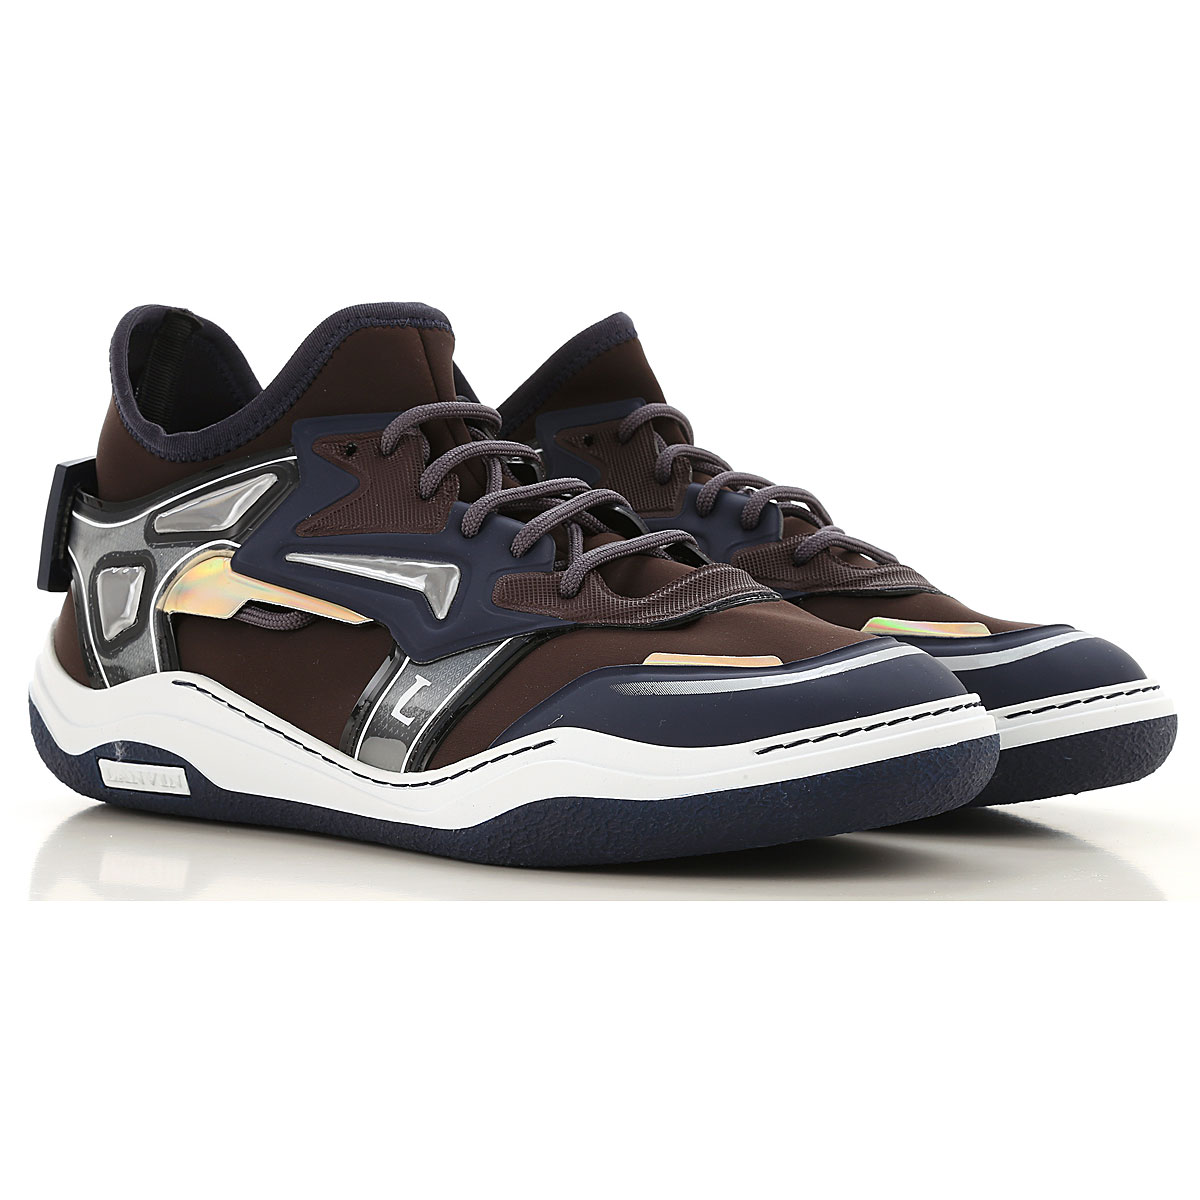 Lanvin Sneakers for Men in Outlet Brown USA - GOOFASH